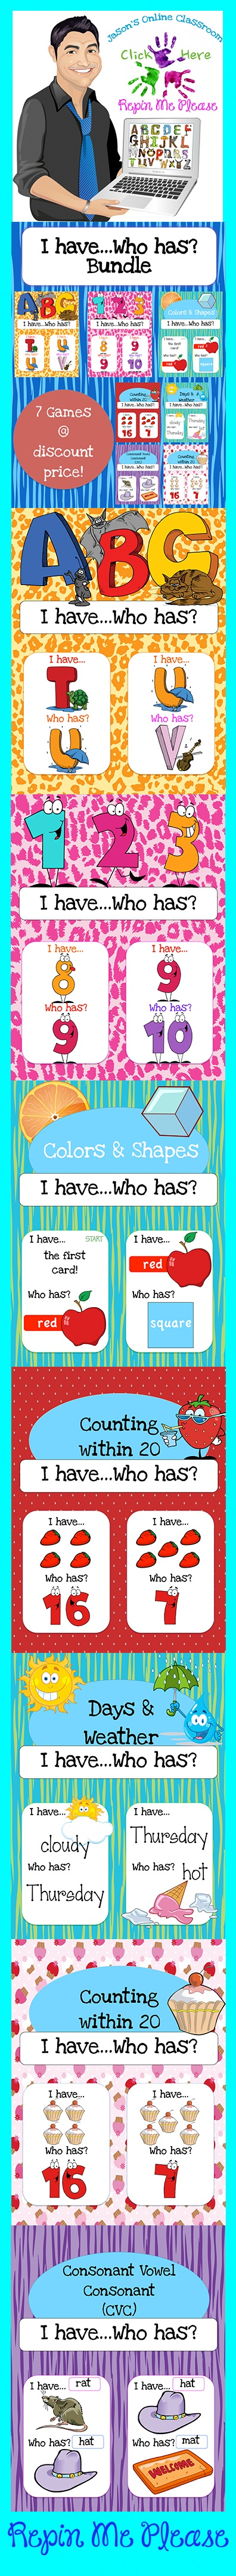 $6 - I Have Who Has Bundle featuring 7 games for Pre-K to K for a variety of common core related skills all bundled together at a discount price!!  Click link below for more info about the images used to make this resource (Images © Graphics Factory) http://jasonsonlineclassroom.com./graphics-factory/